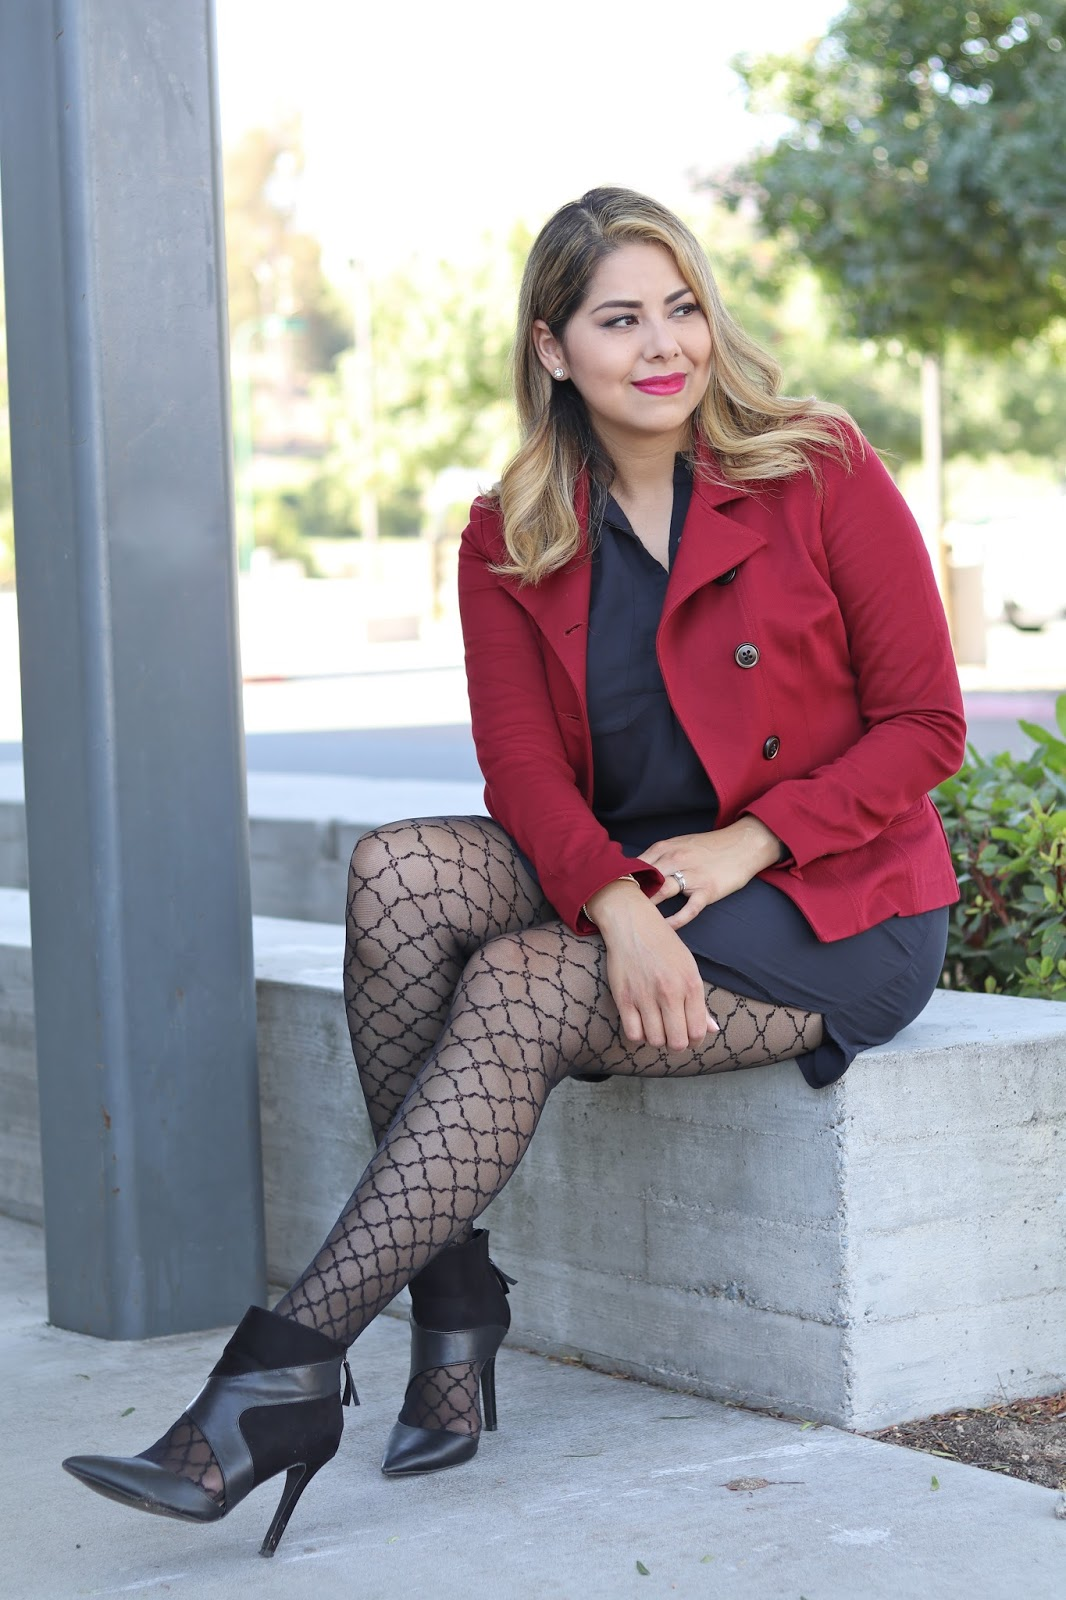 Latina Style Wars: Statement Tights